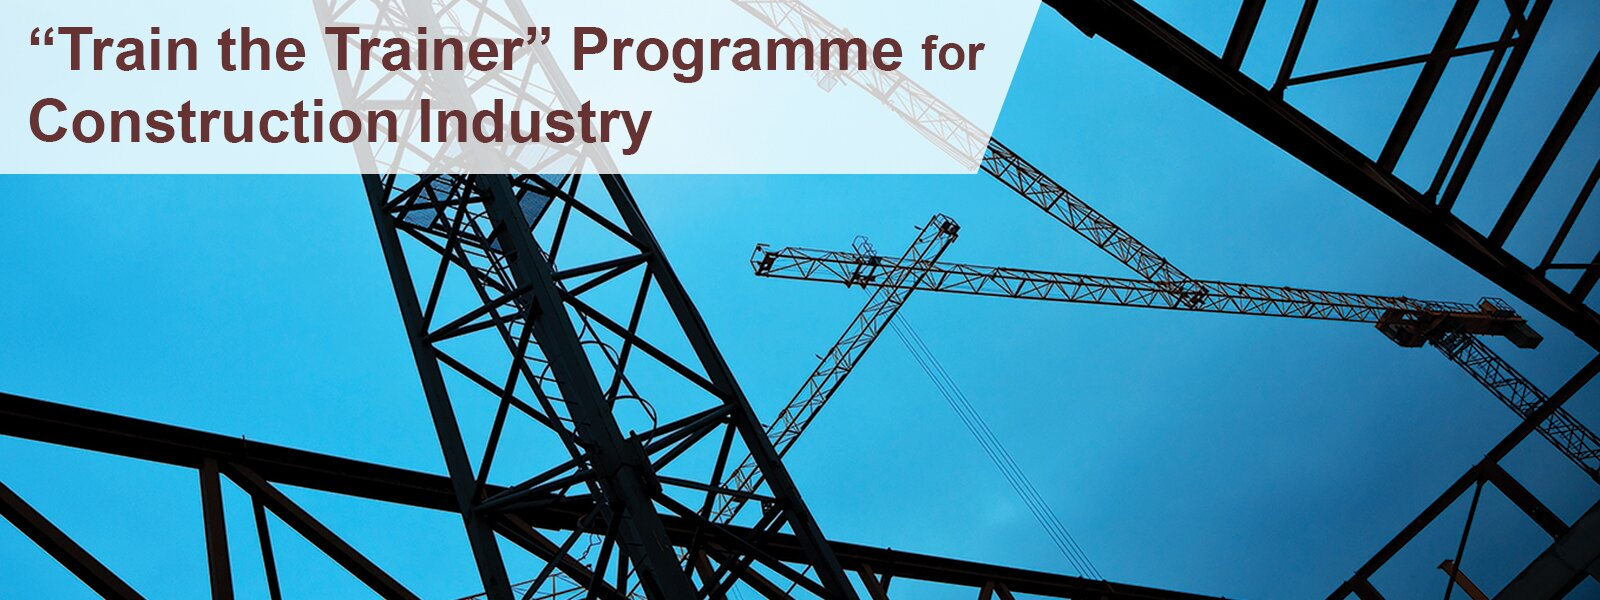 """Train the Trainer"" Programme for Construction Industry"